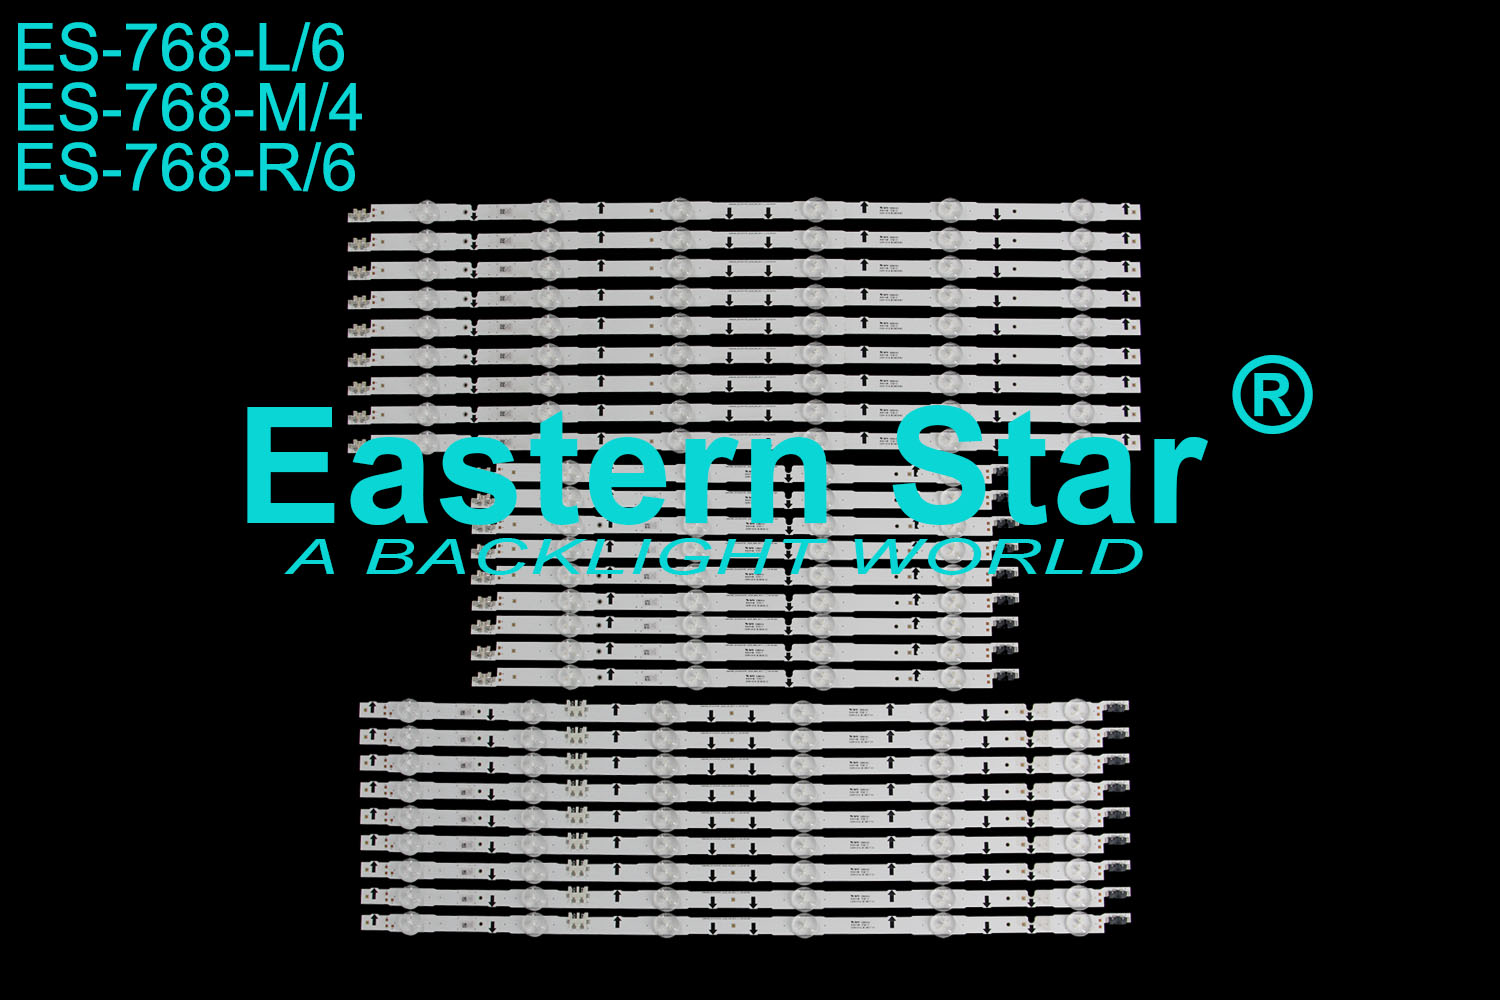 ES-768 LED TV Backlight use for Samsung 75'' UE75H6470, UE75H6400 SAMSUNG_2014SVS75F_3228_L06 M04 R06  LED STRIPS(27)